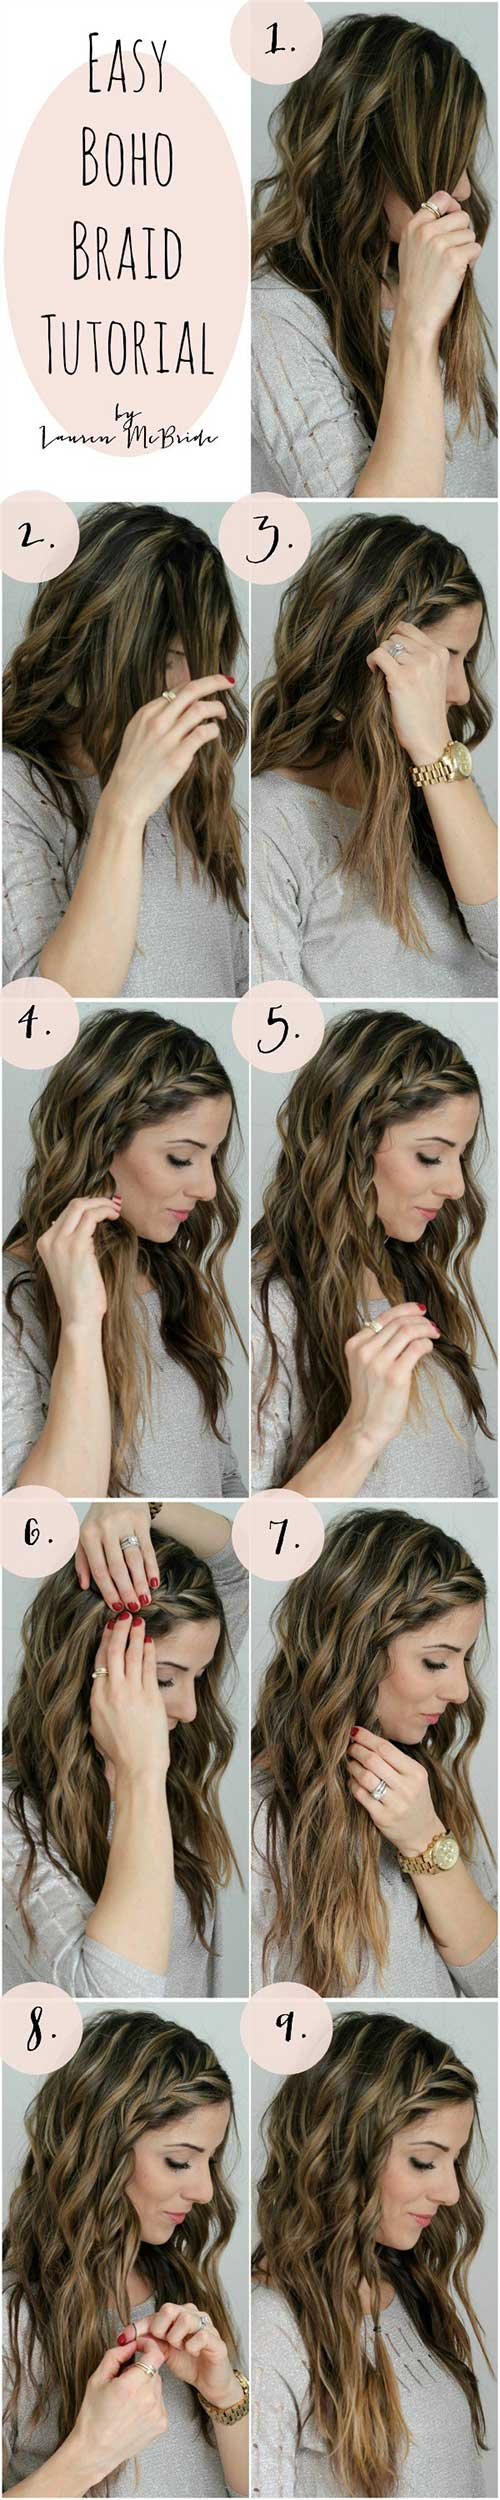 7. Easy Boho Braid